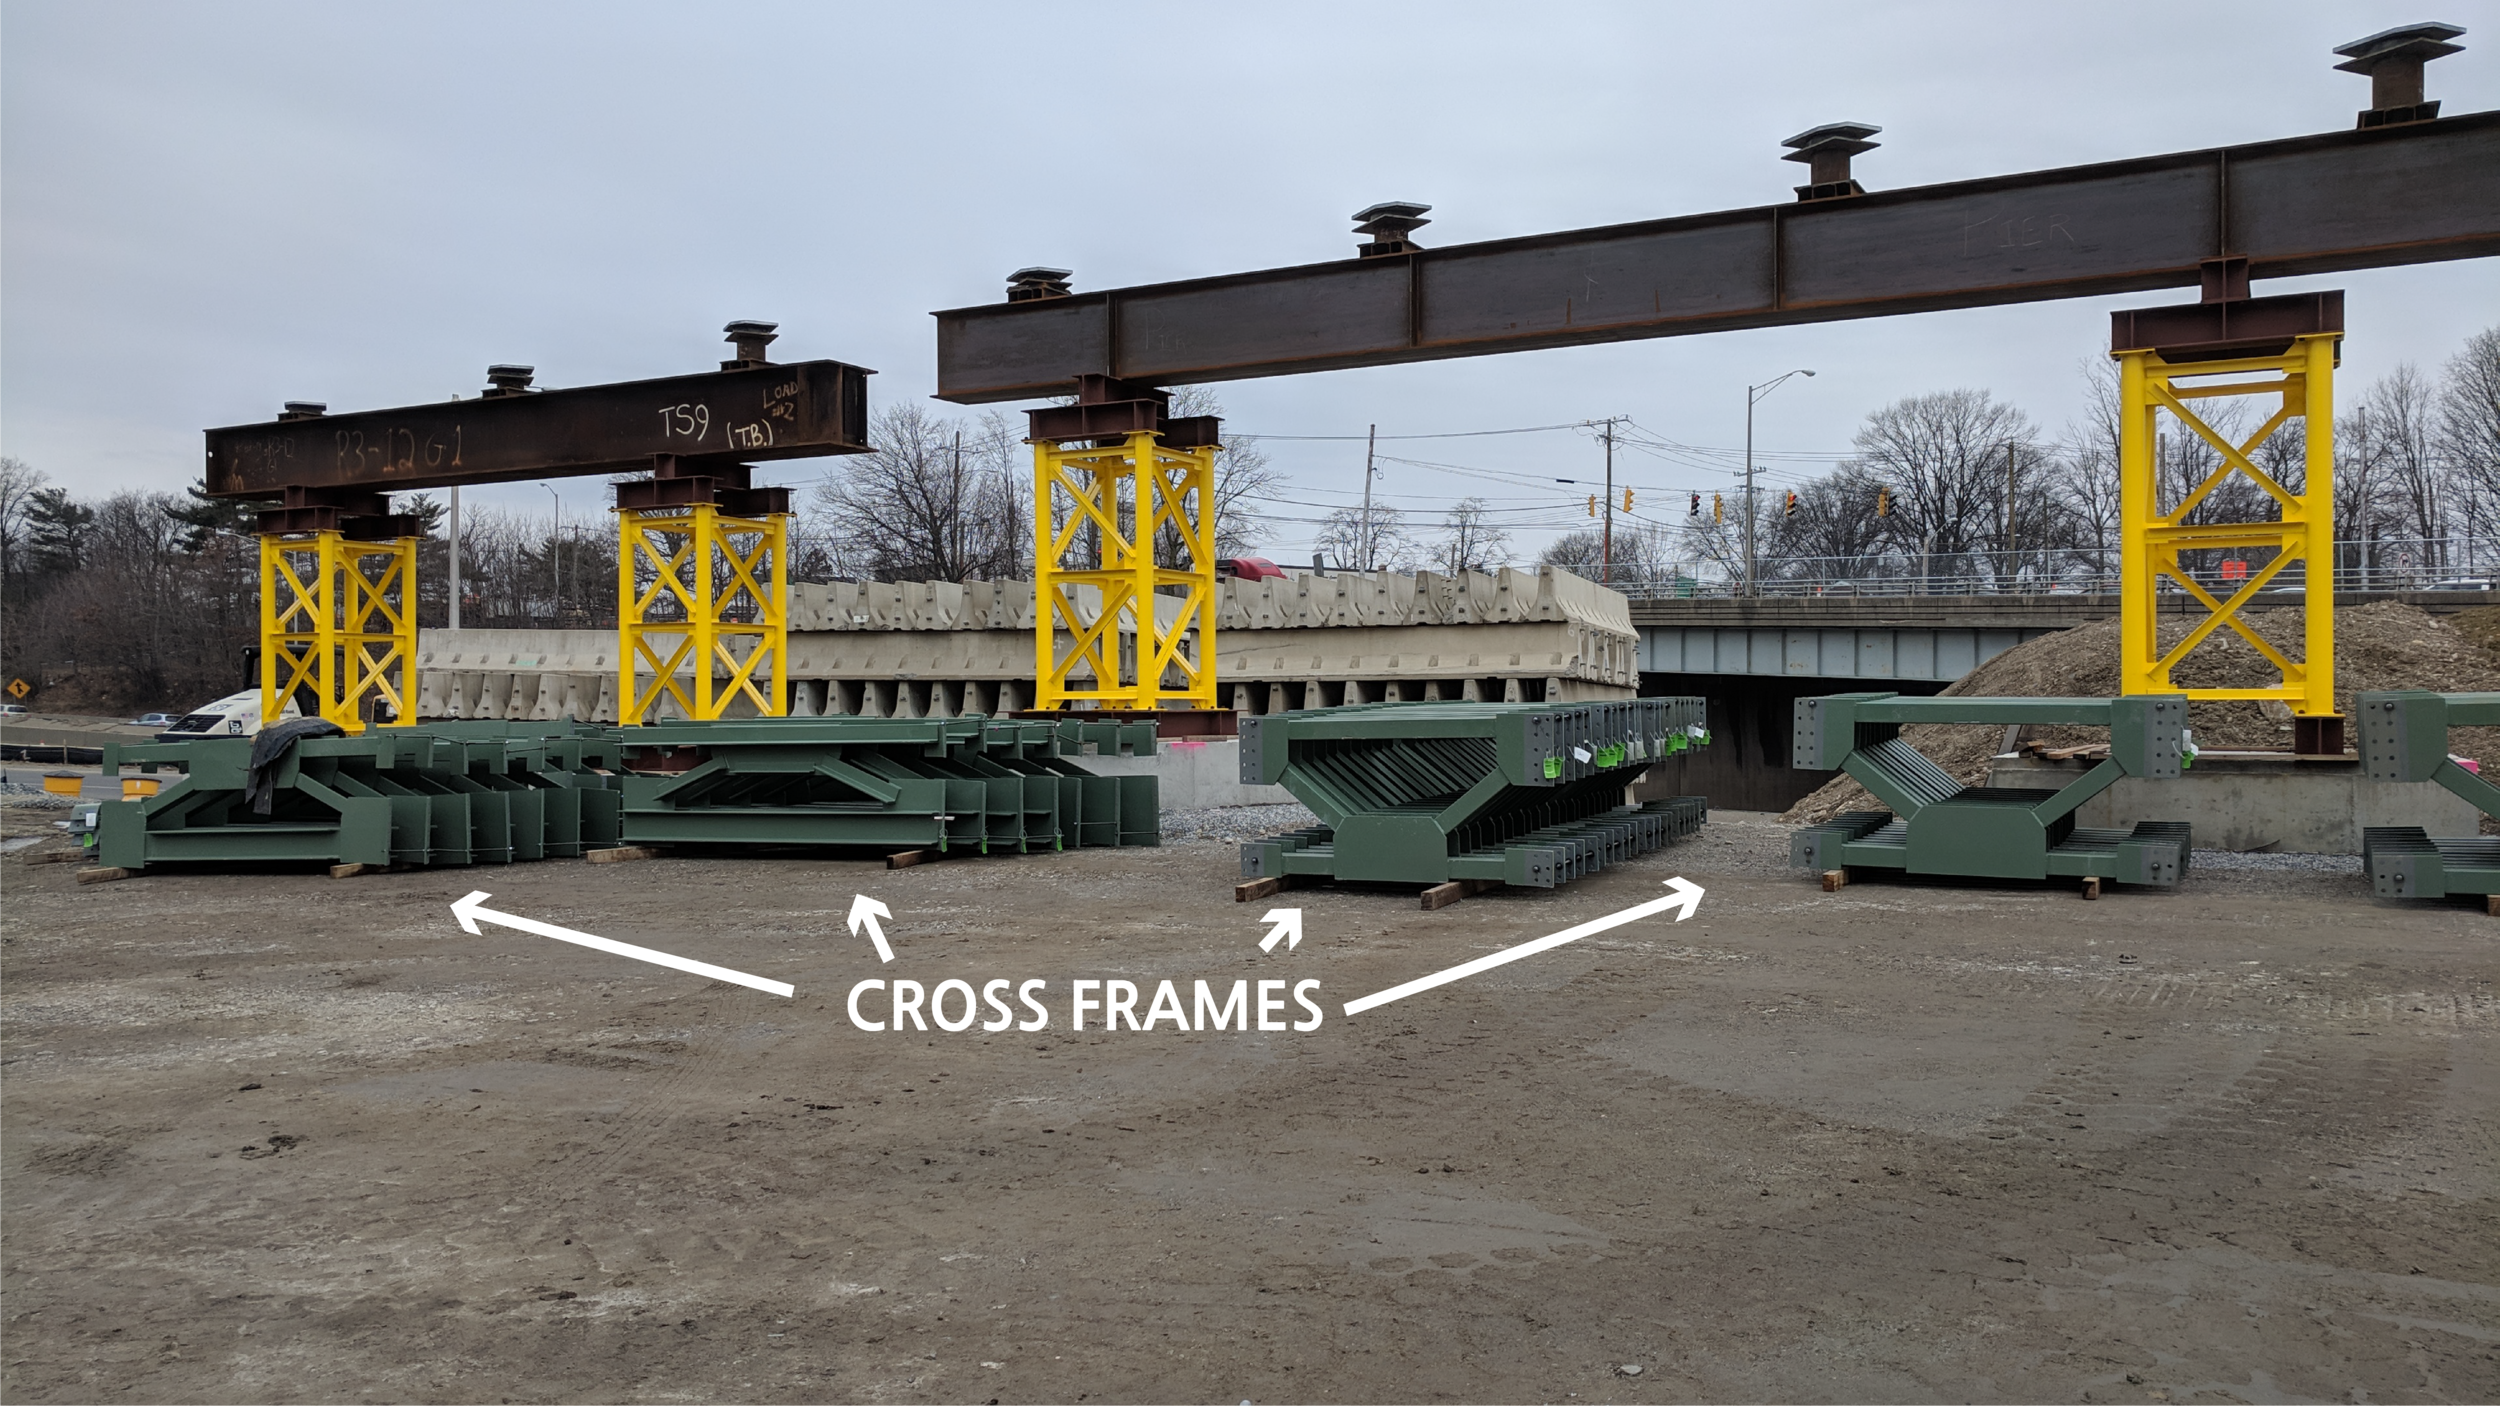 2/11/2019 by Jonathan Wu   The cross frames at the construction site